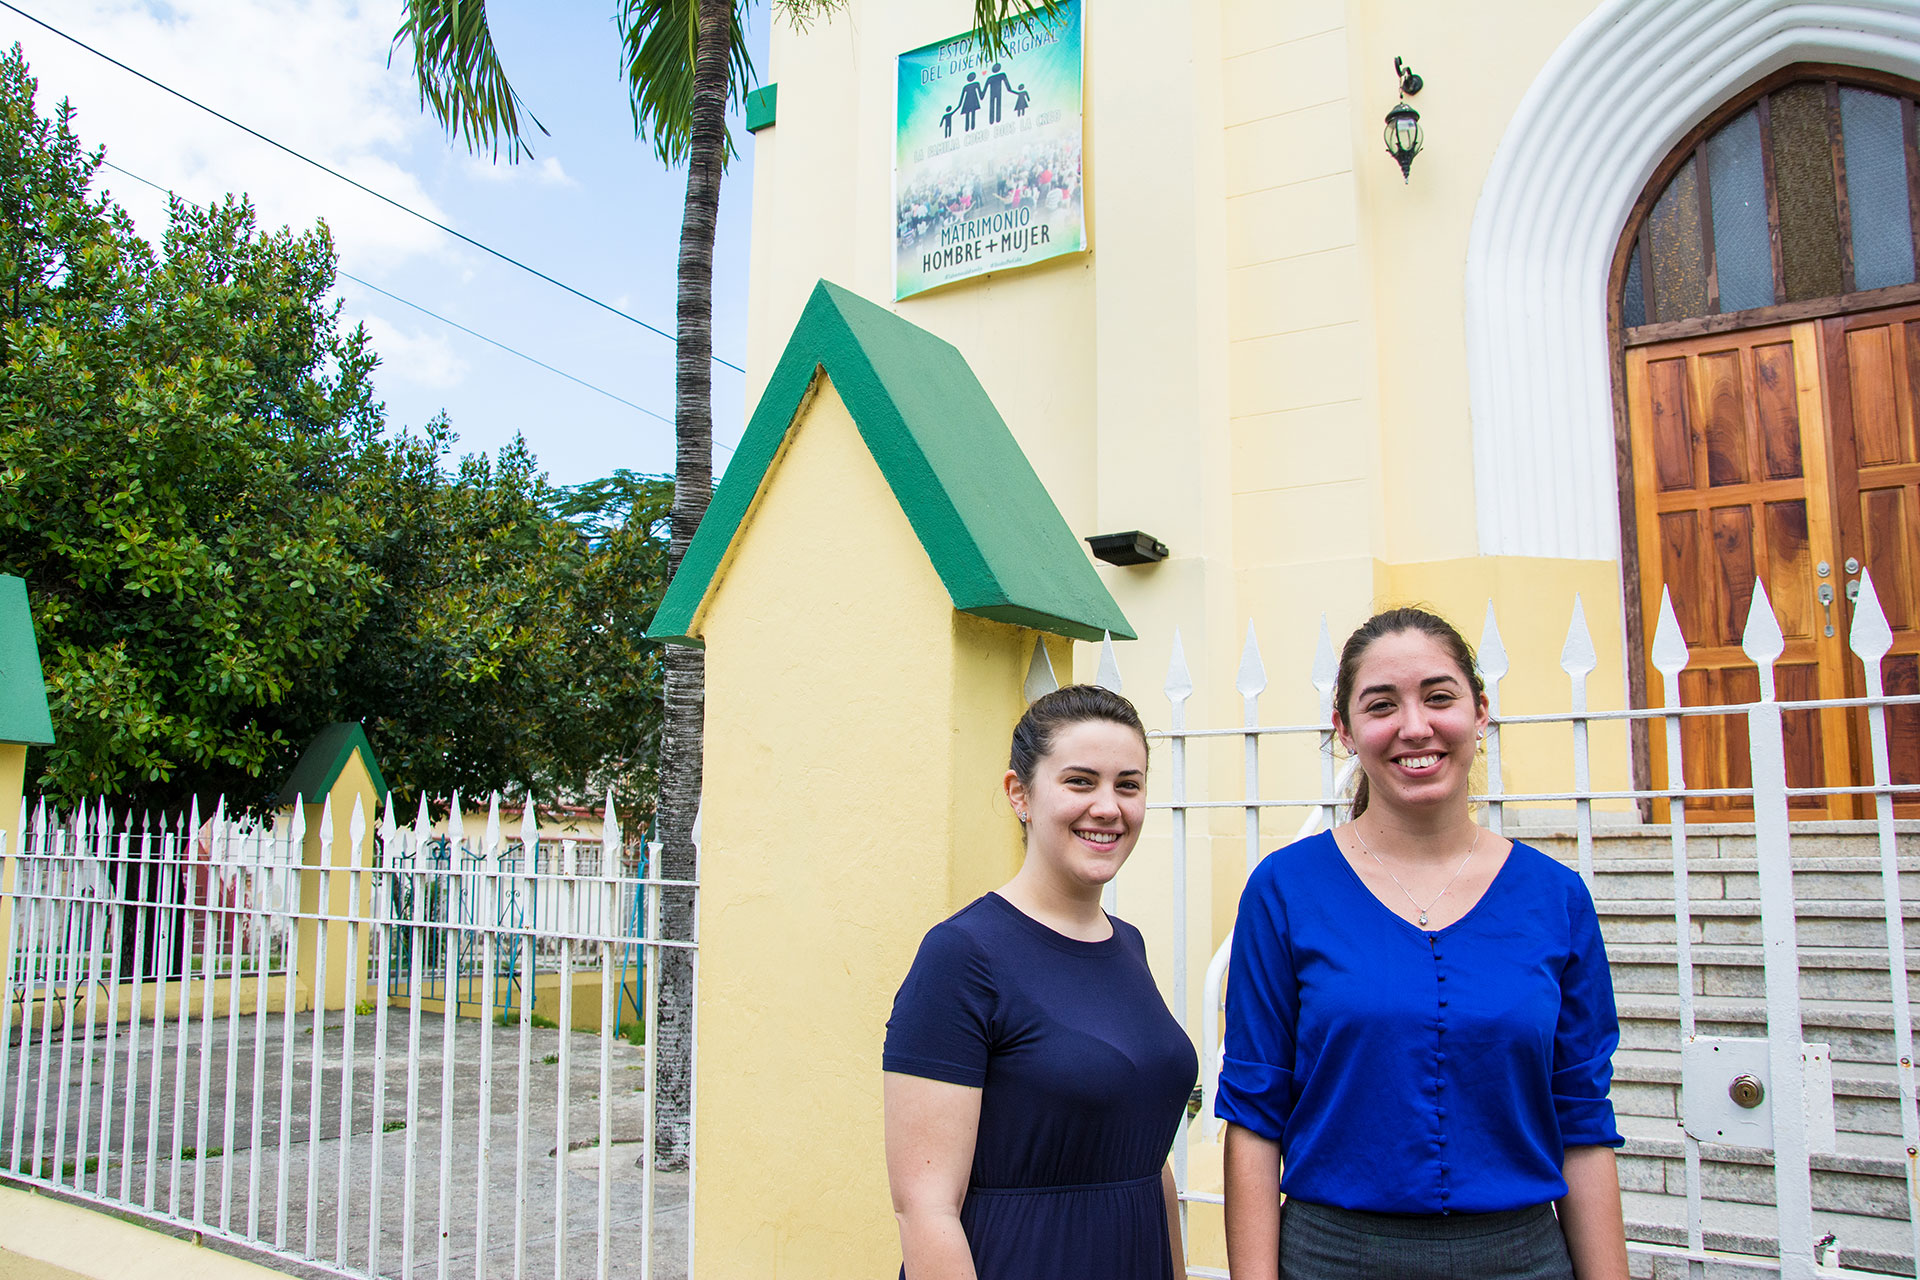 "Danielle Byerly, left, a visiting missionary from Asheboro, North Carolina, and Pastor Leidy Guerra pose for a portrait March 9, 2019, outside of Iglesia Metodista de Marianao, their church in southwest Havana, Cuba. Evangelical churches across Cuba hung posters opposing the constitutional referendum and same-sex marriage with the phrase, ""I am in favor of the original design.""  (Photo by Story Hinckley/GroundTruth)"